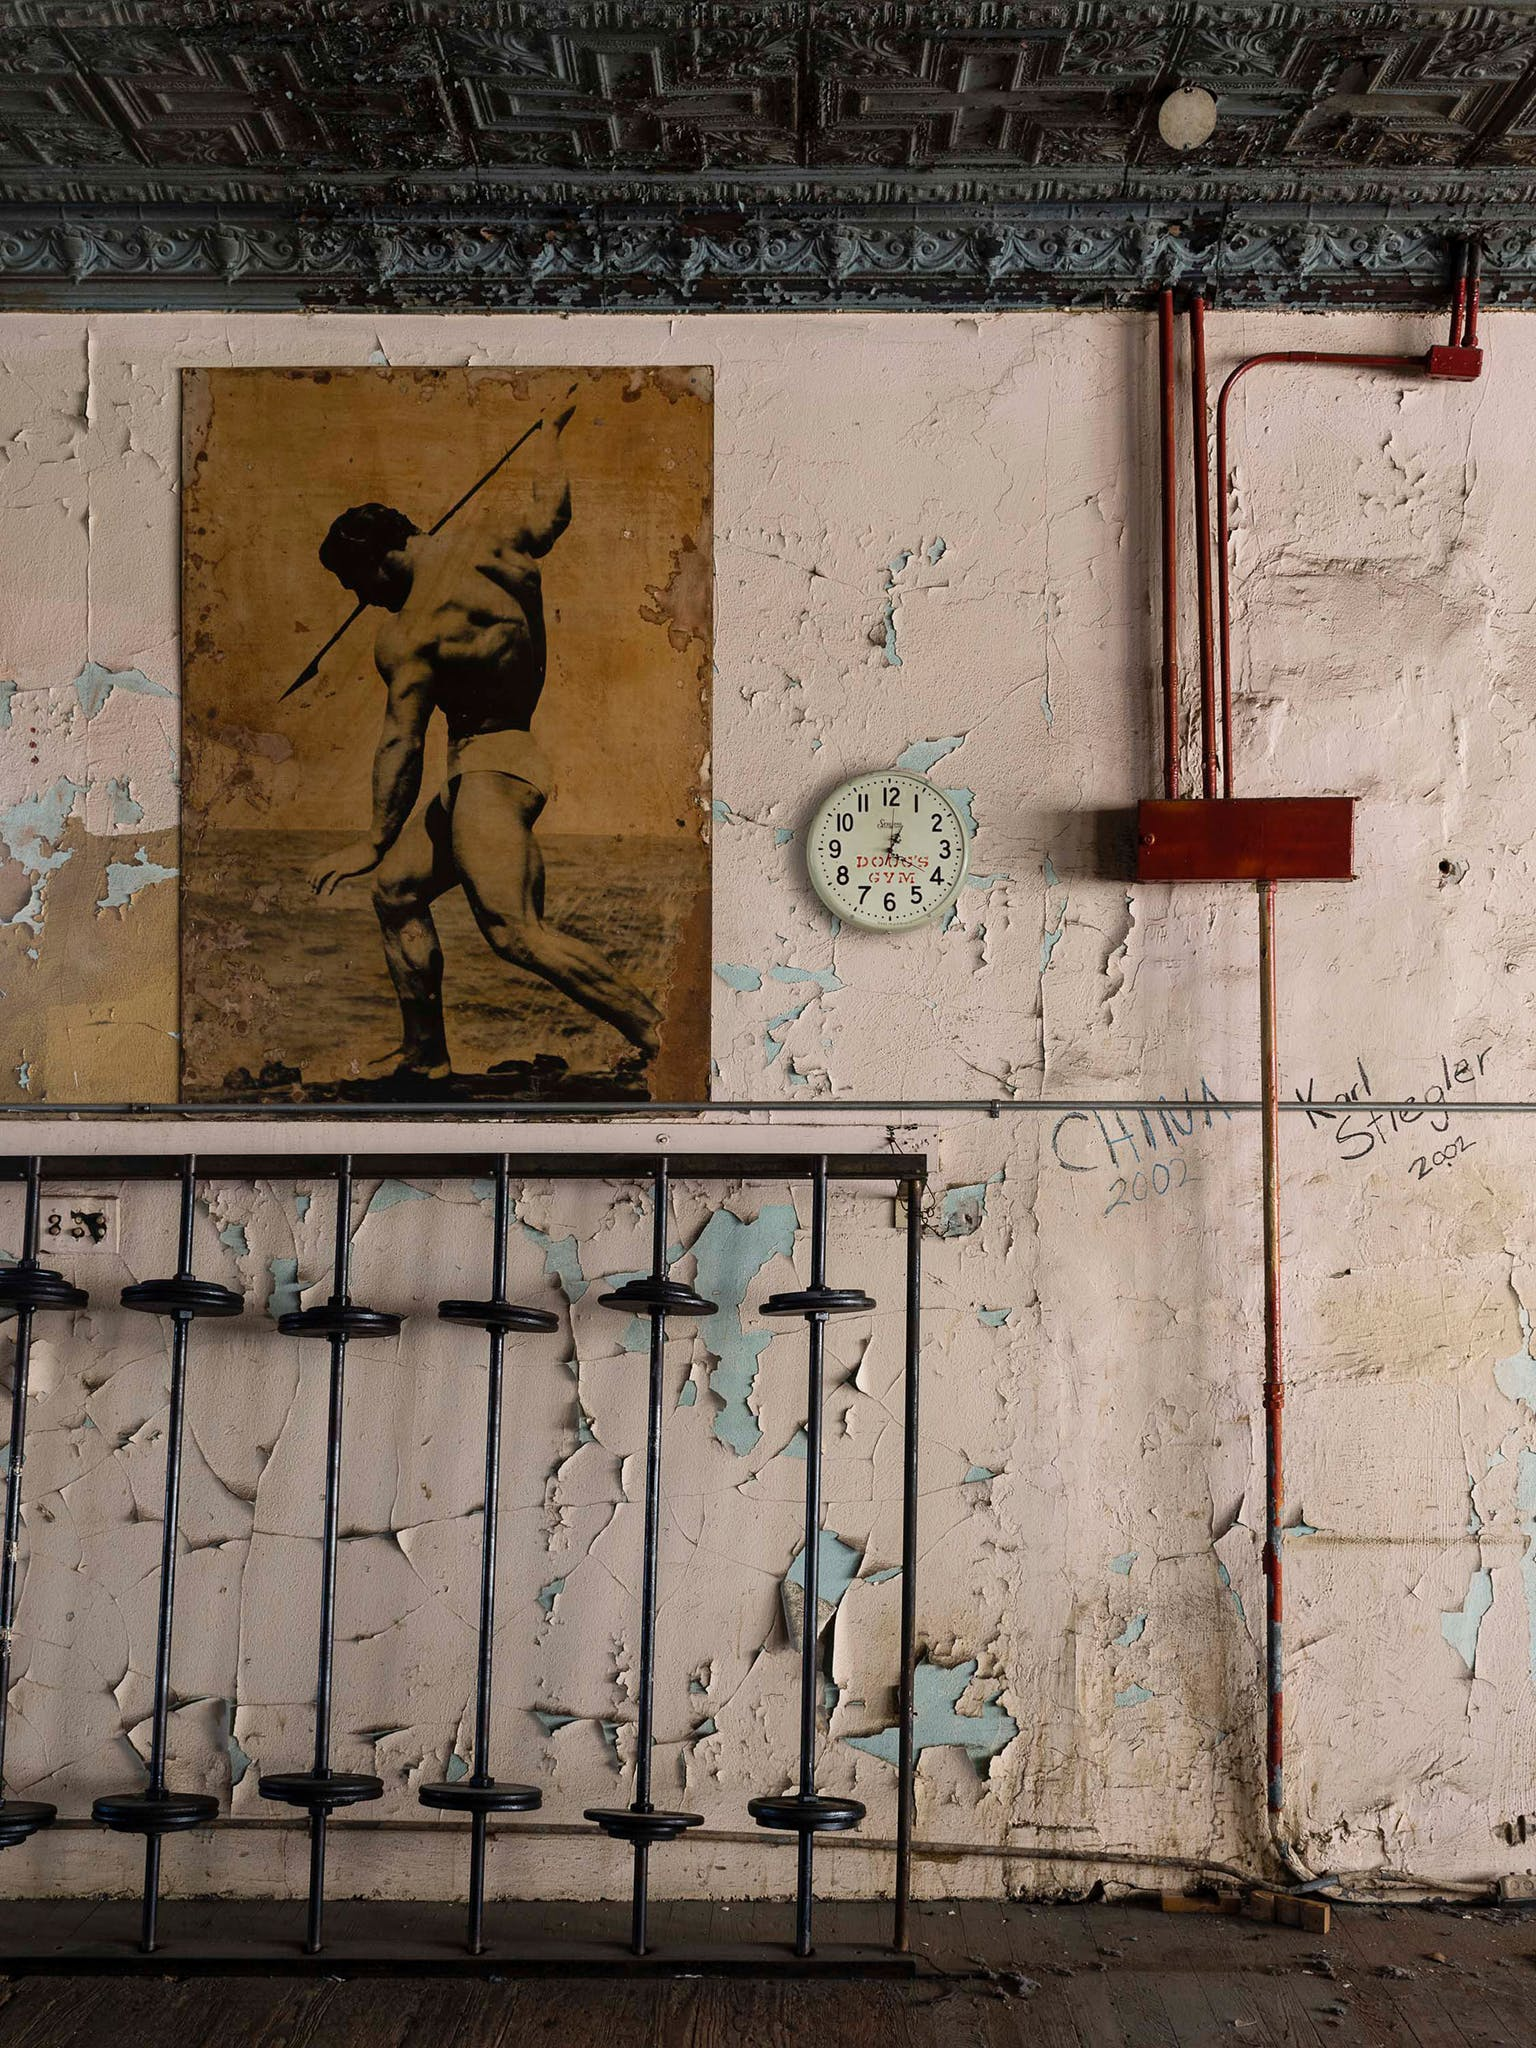 Of the more than 3,000 pictures Diamond took, this is one of his favorites. There's a starkness to the image, but mostly a sense of decay: the faded poster (of '36 Olympian John Grimek), the fossilized floor, all that slowly peeling paint.